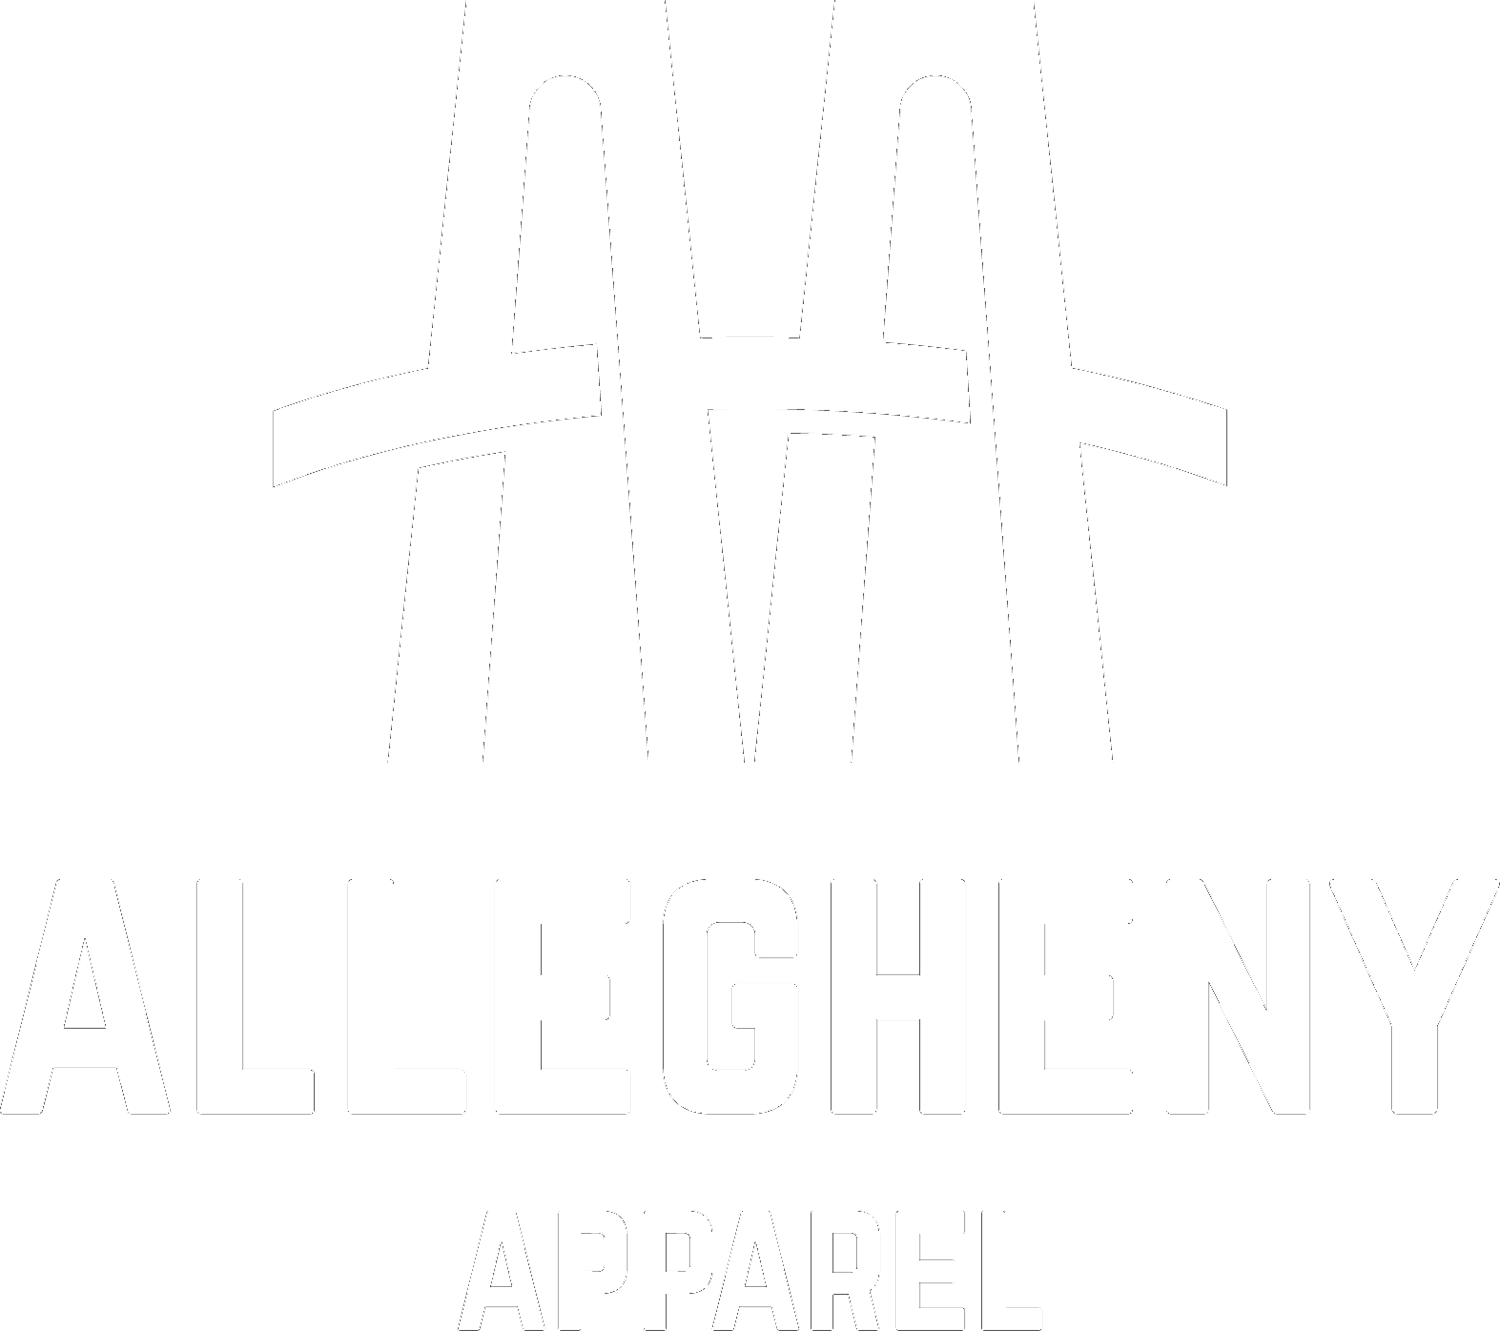 Allegheny Apparel